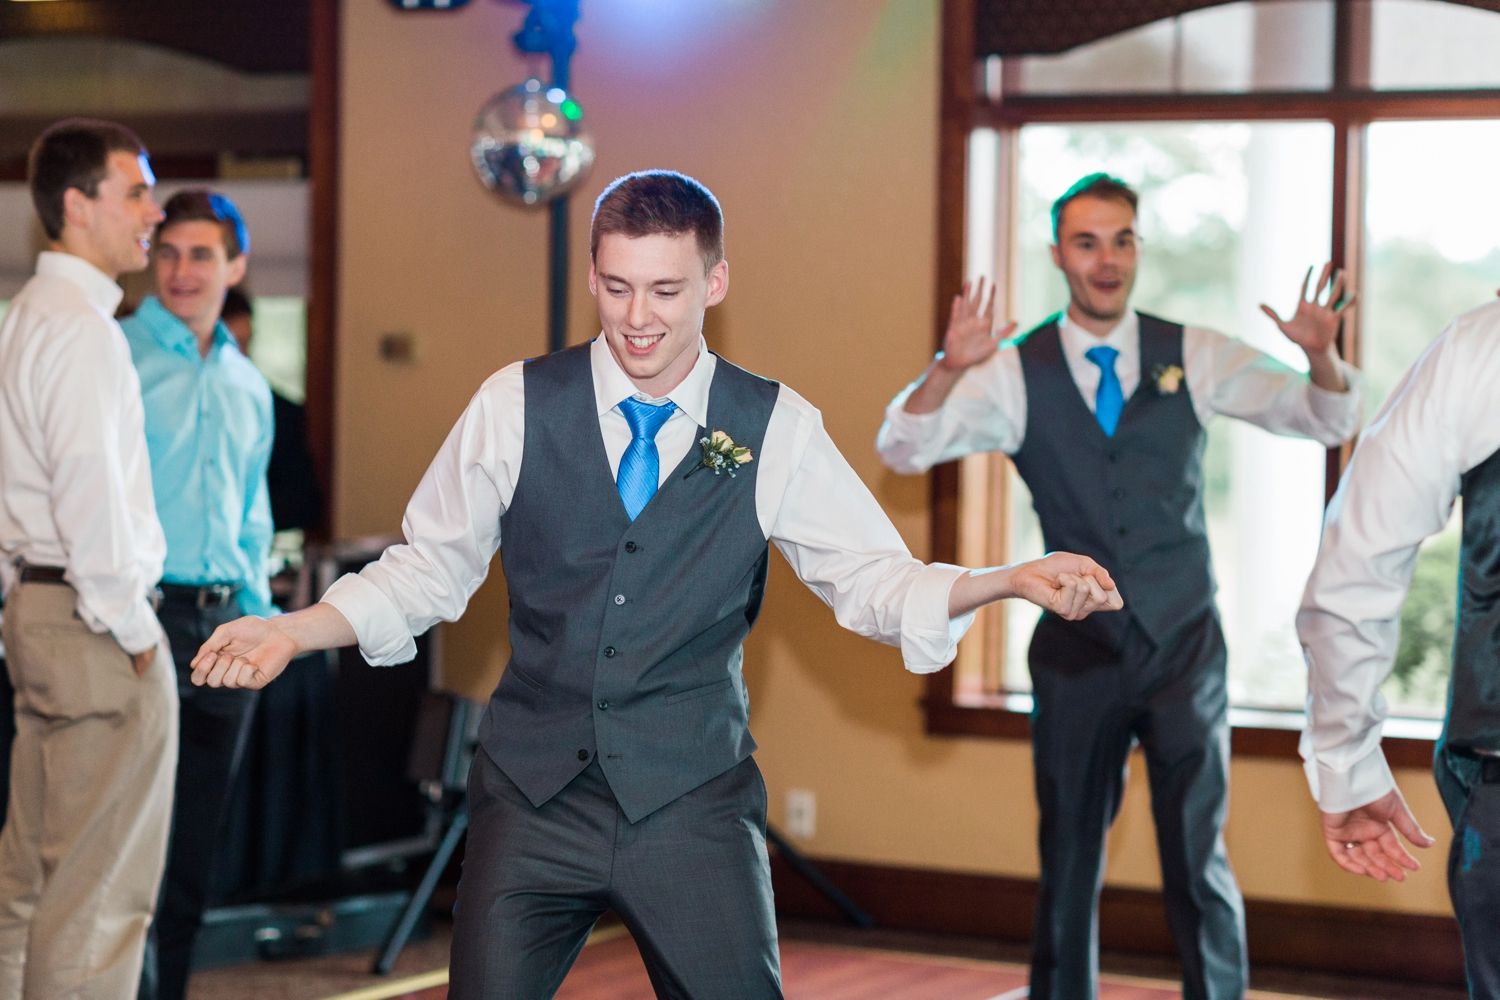 NCR_Country_Club_Kettering_Ohio_Wedding_Photography_Chloe_Luka_Photography_7212.jpg